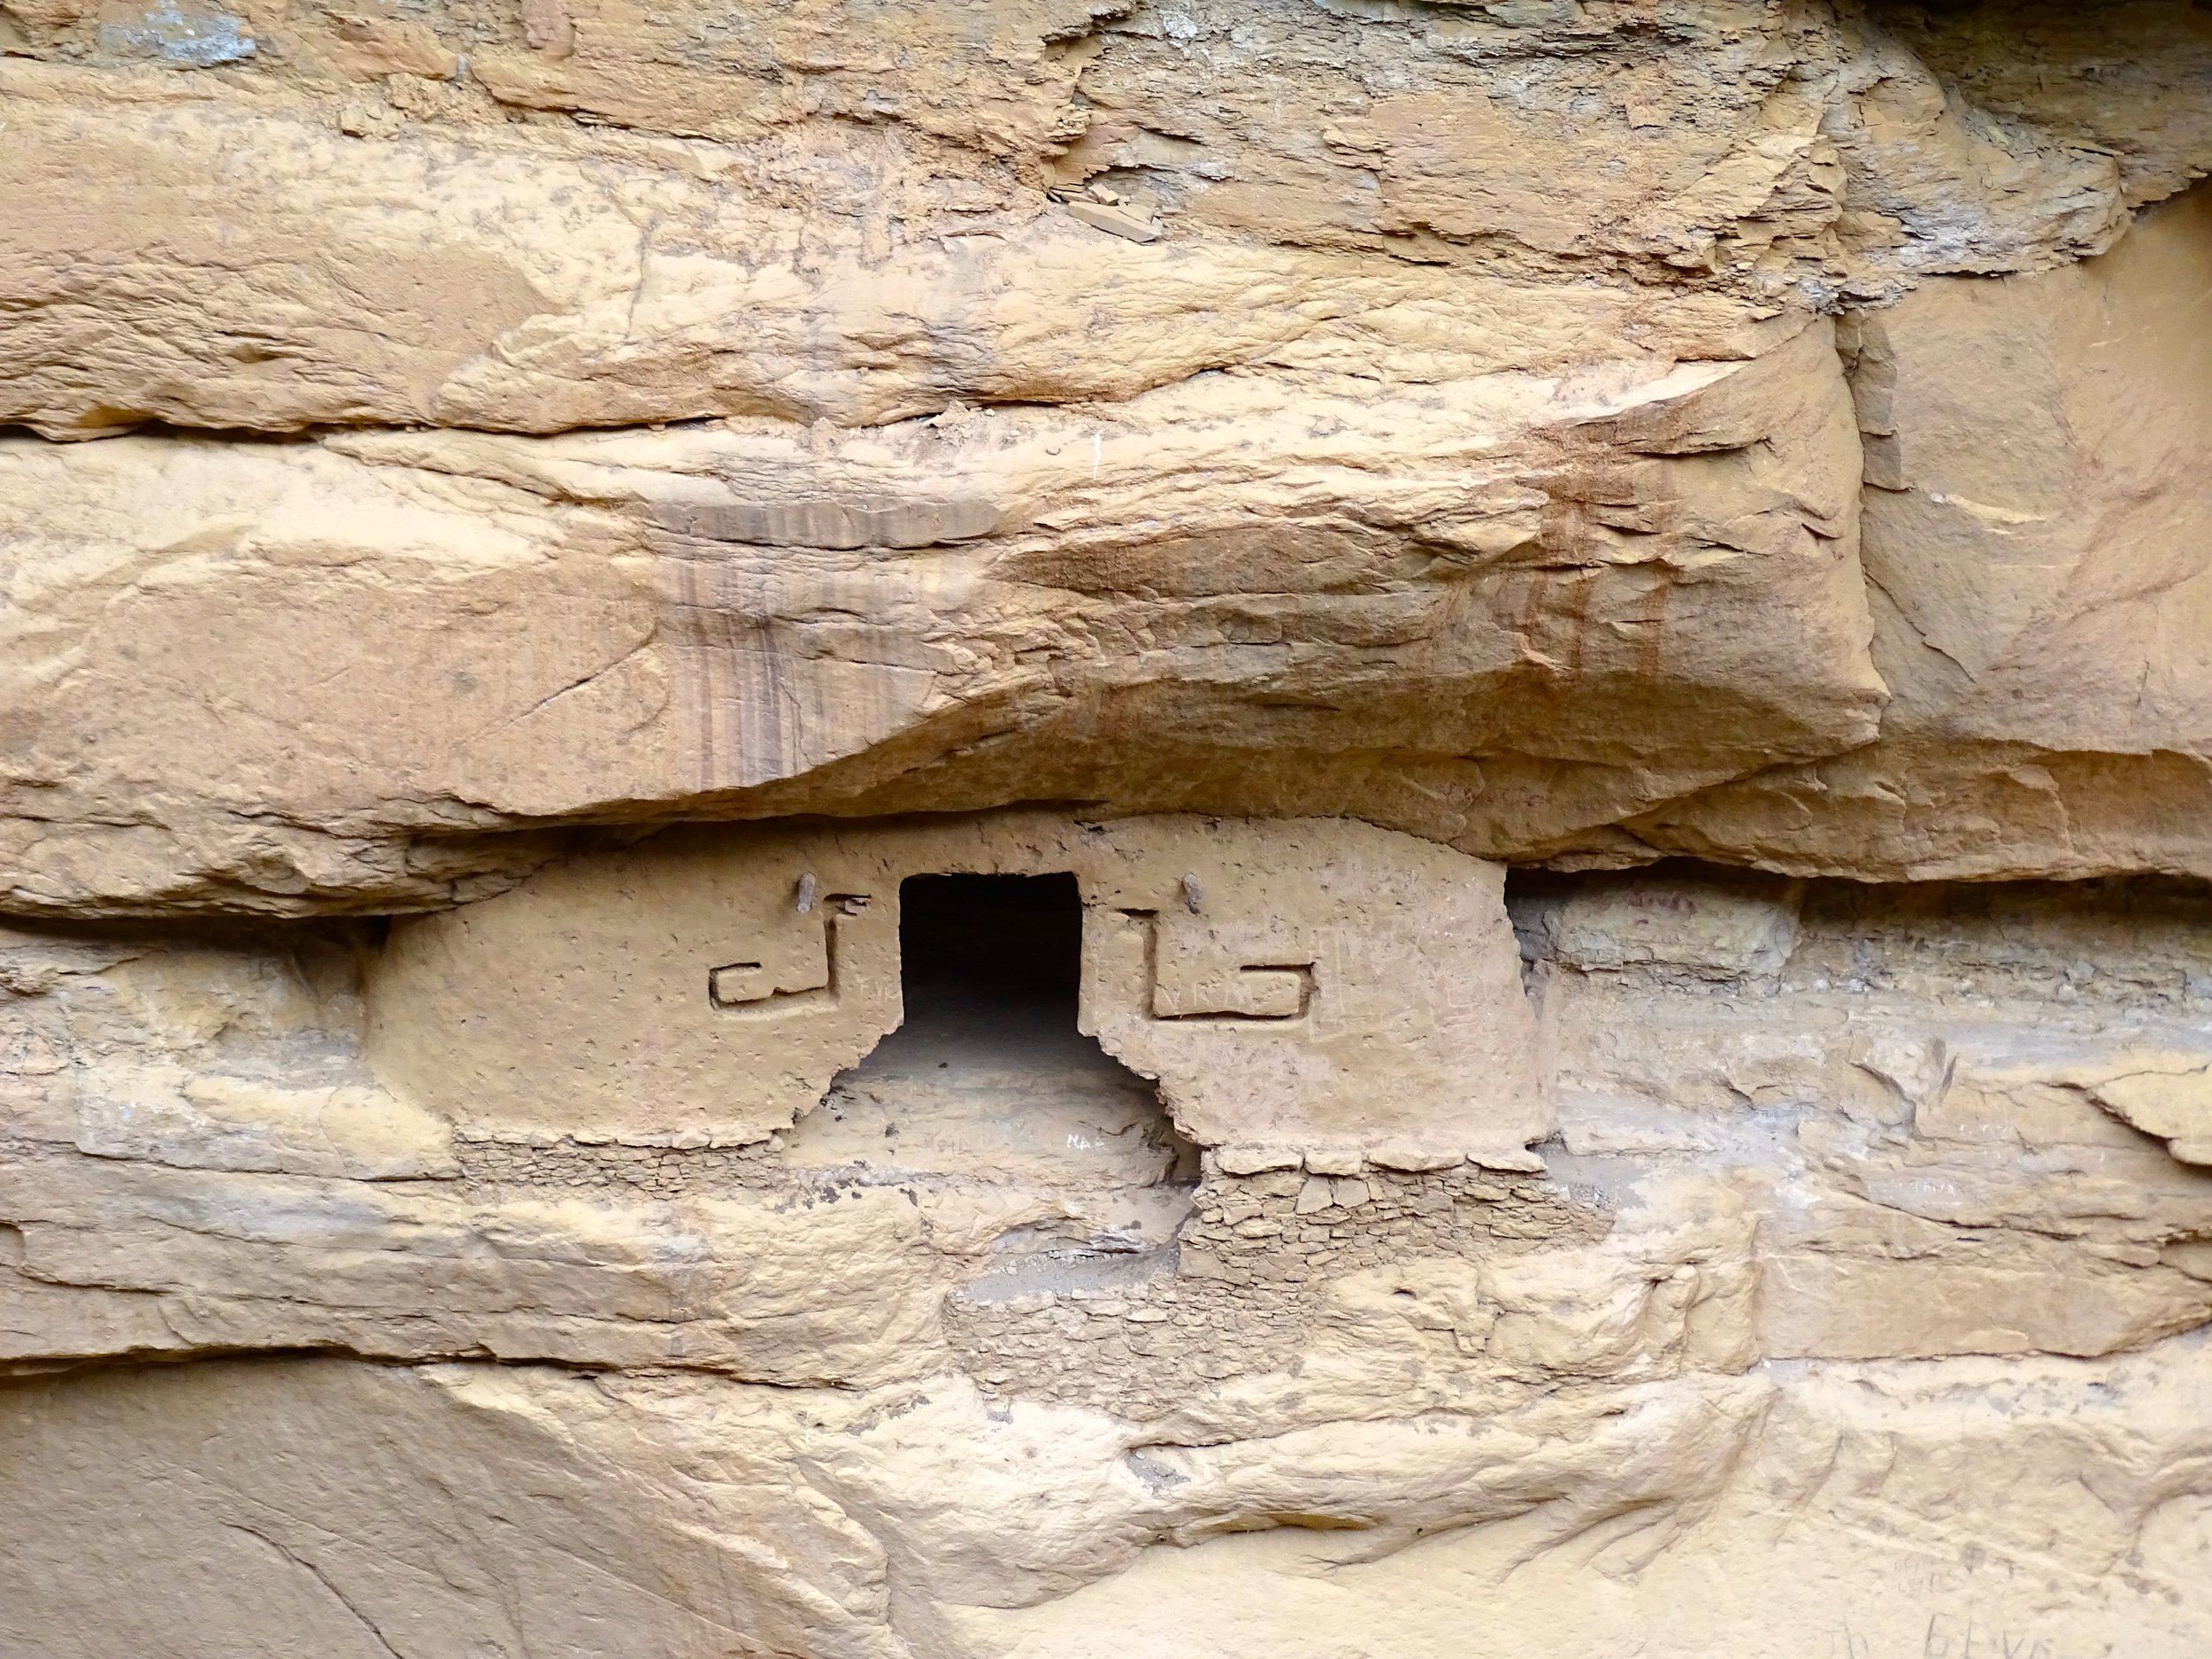 This dwelling sat apart from the others, and may have been a shaman's residence.